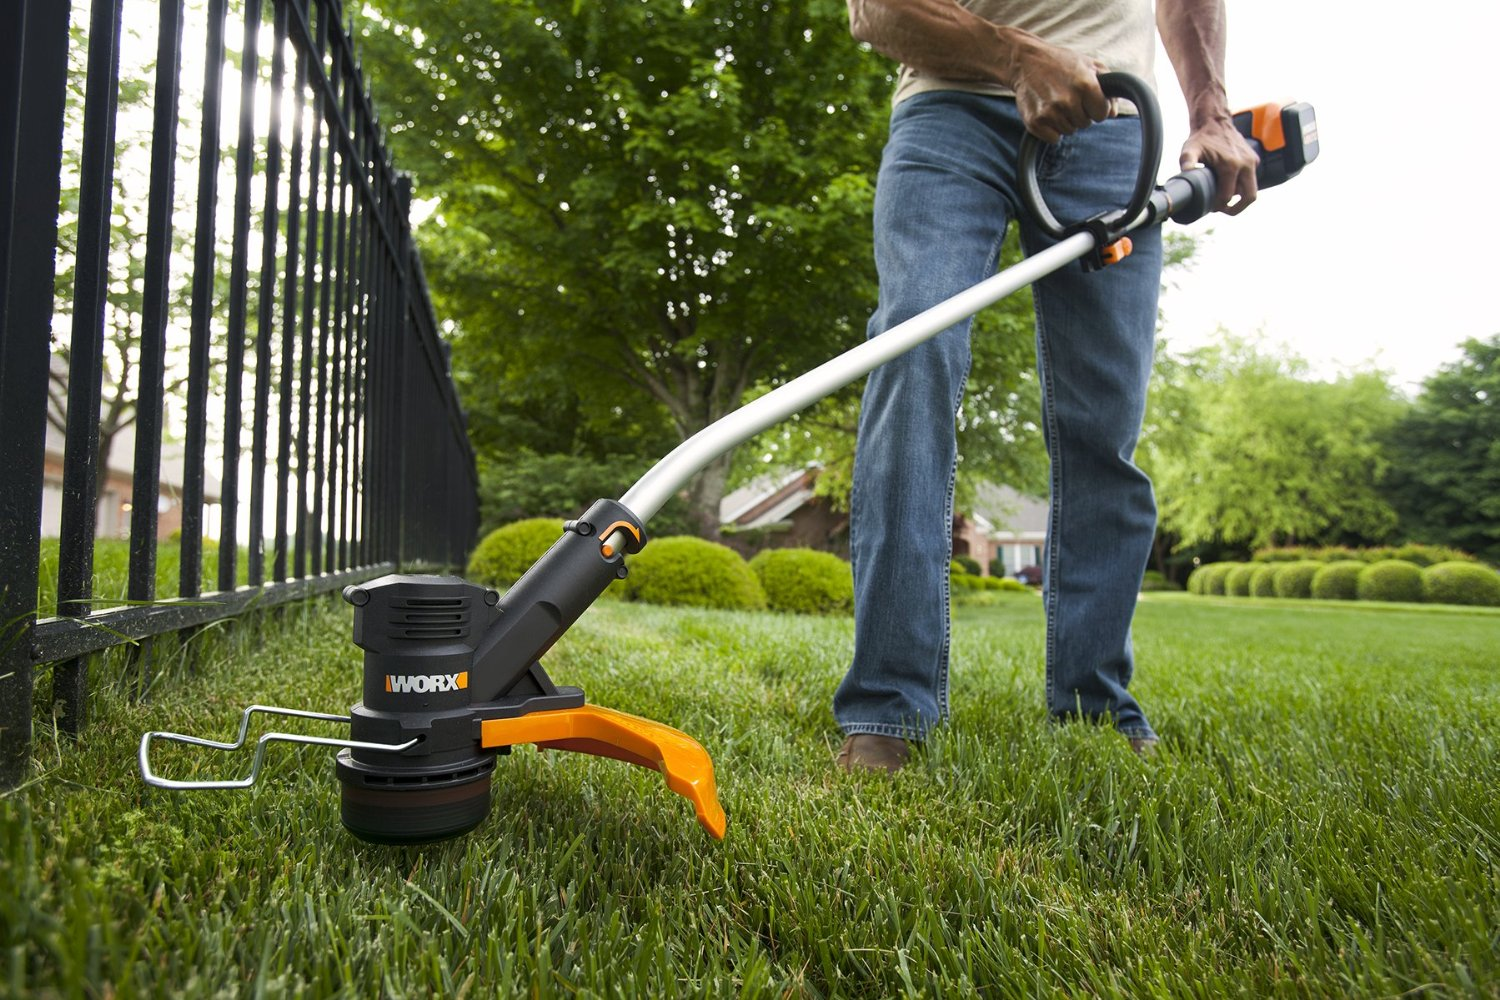 lawn edging, landscape edging ideas, lawn edging ideas, yard edging ideas, lawn borders, yard edging, grass edging, flower bed edging ideas, landscape border ideas, edging ideas, best landscape edging, grass edging ideas, garden edging ideas, lawn edging ideas to keep grass out, landscape edging, garden edging, pound in edging, plastic landscape edging